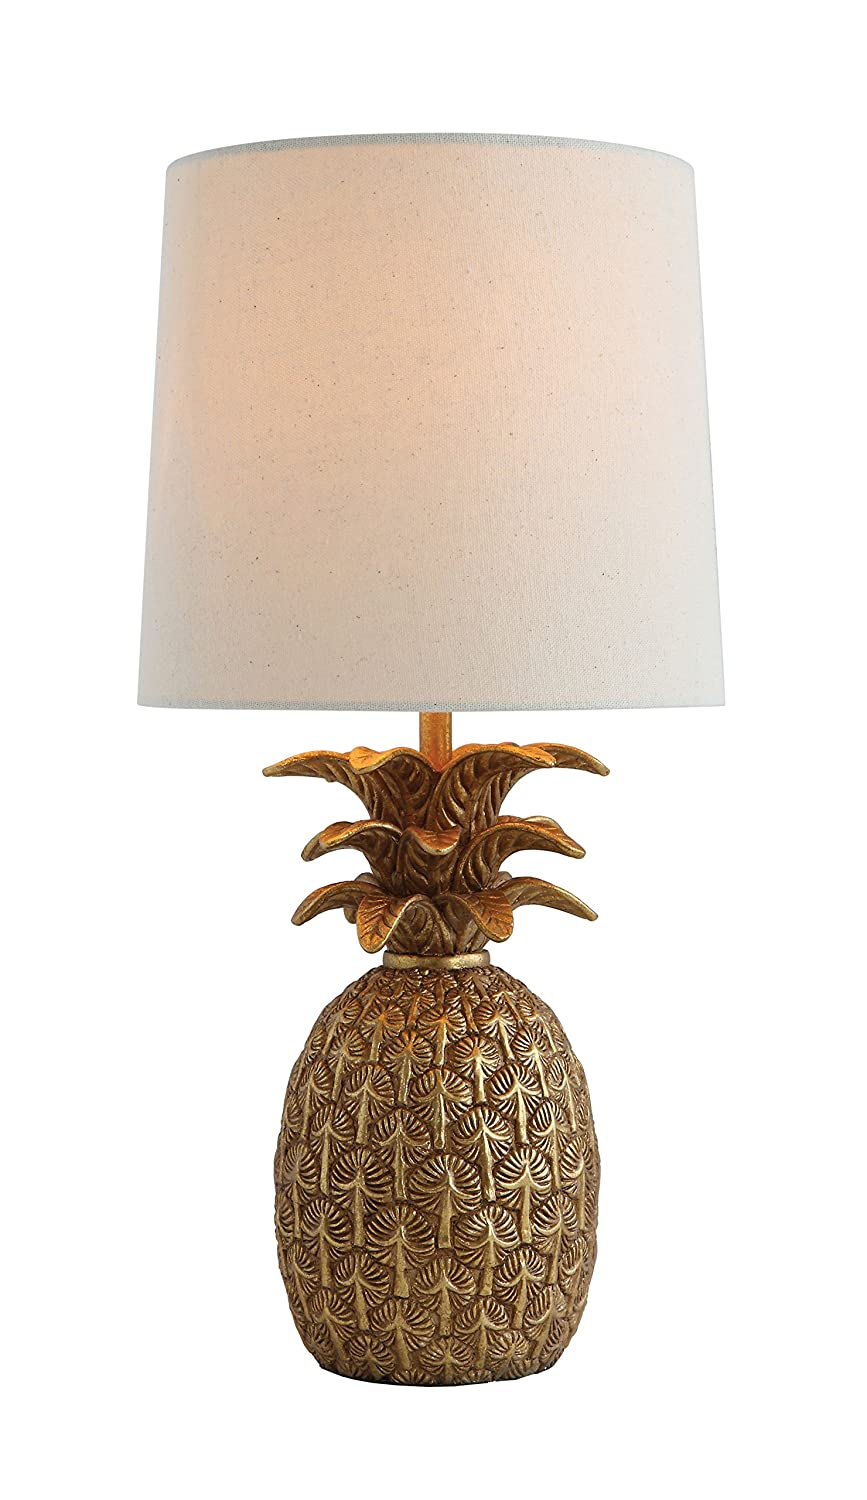 Amazon creative co op da7087 palmfauna pineapple shaped table amazon creative co op da7087 palmfauna pineapple shaped table lamp with distressed gold finish linen shade home kitchen aloadofball Images